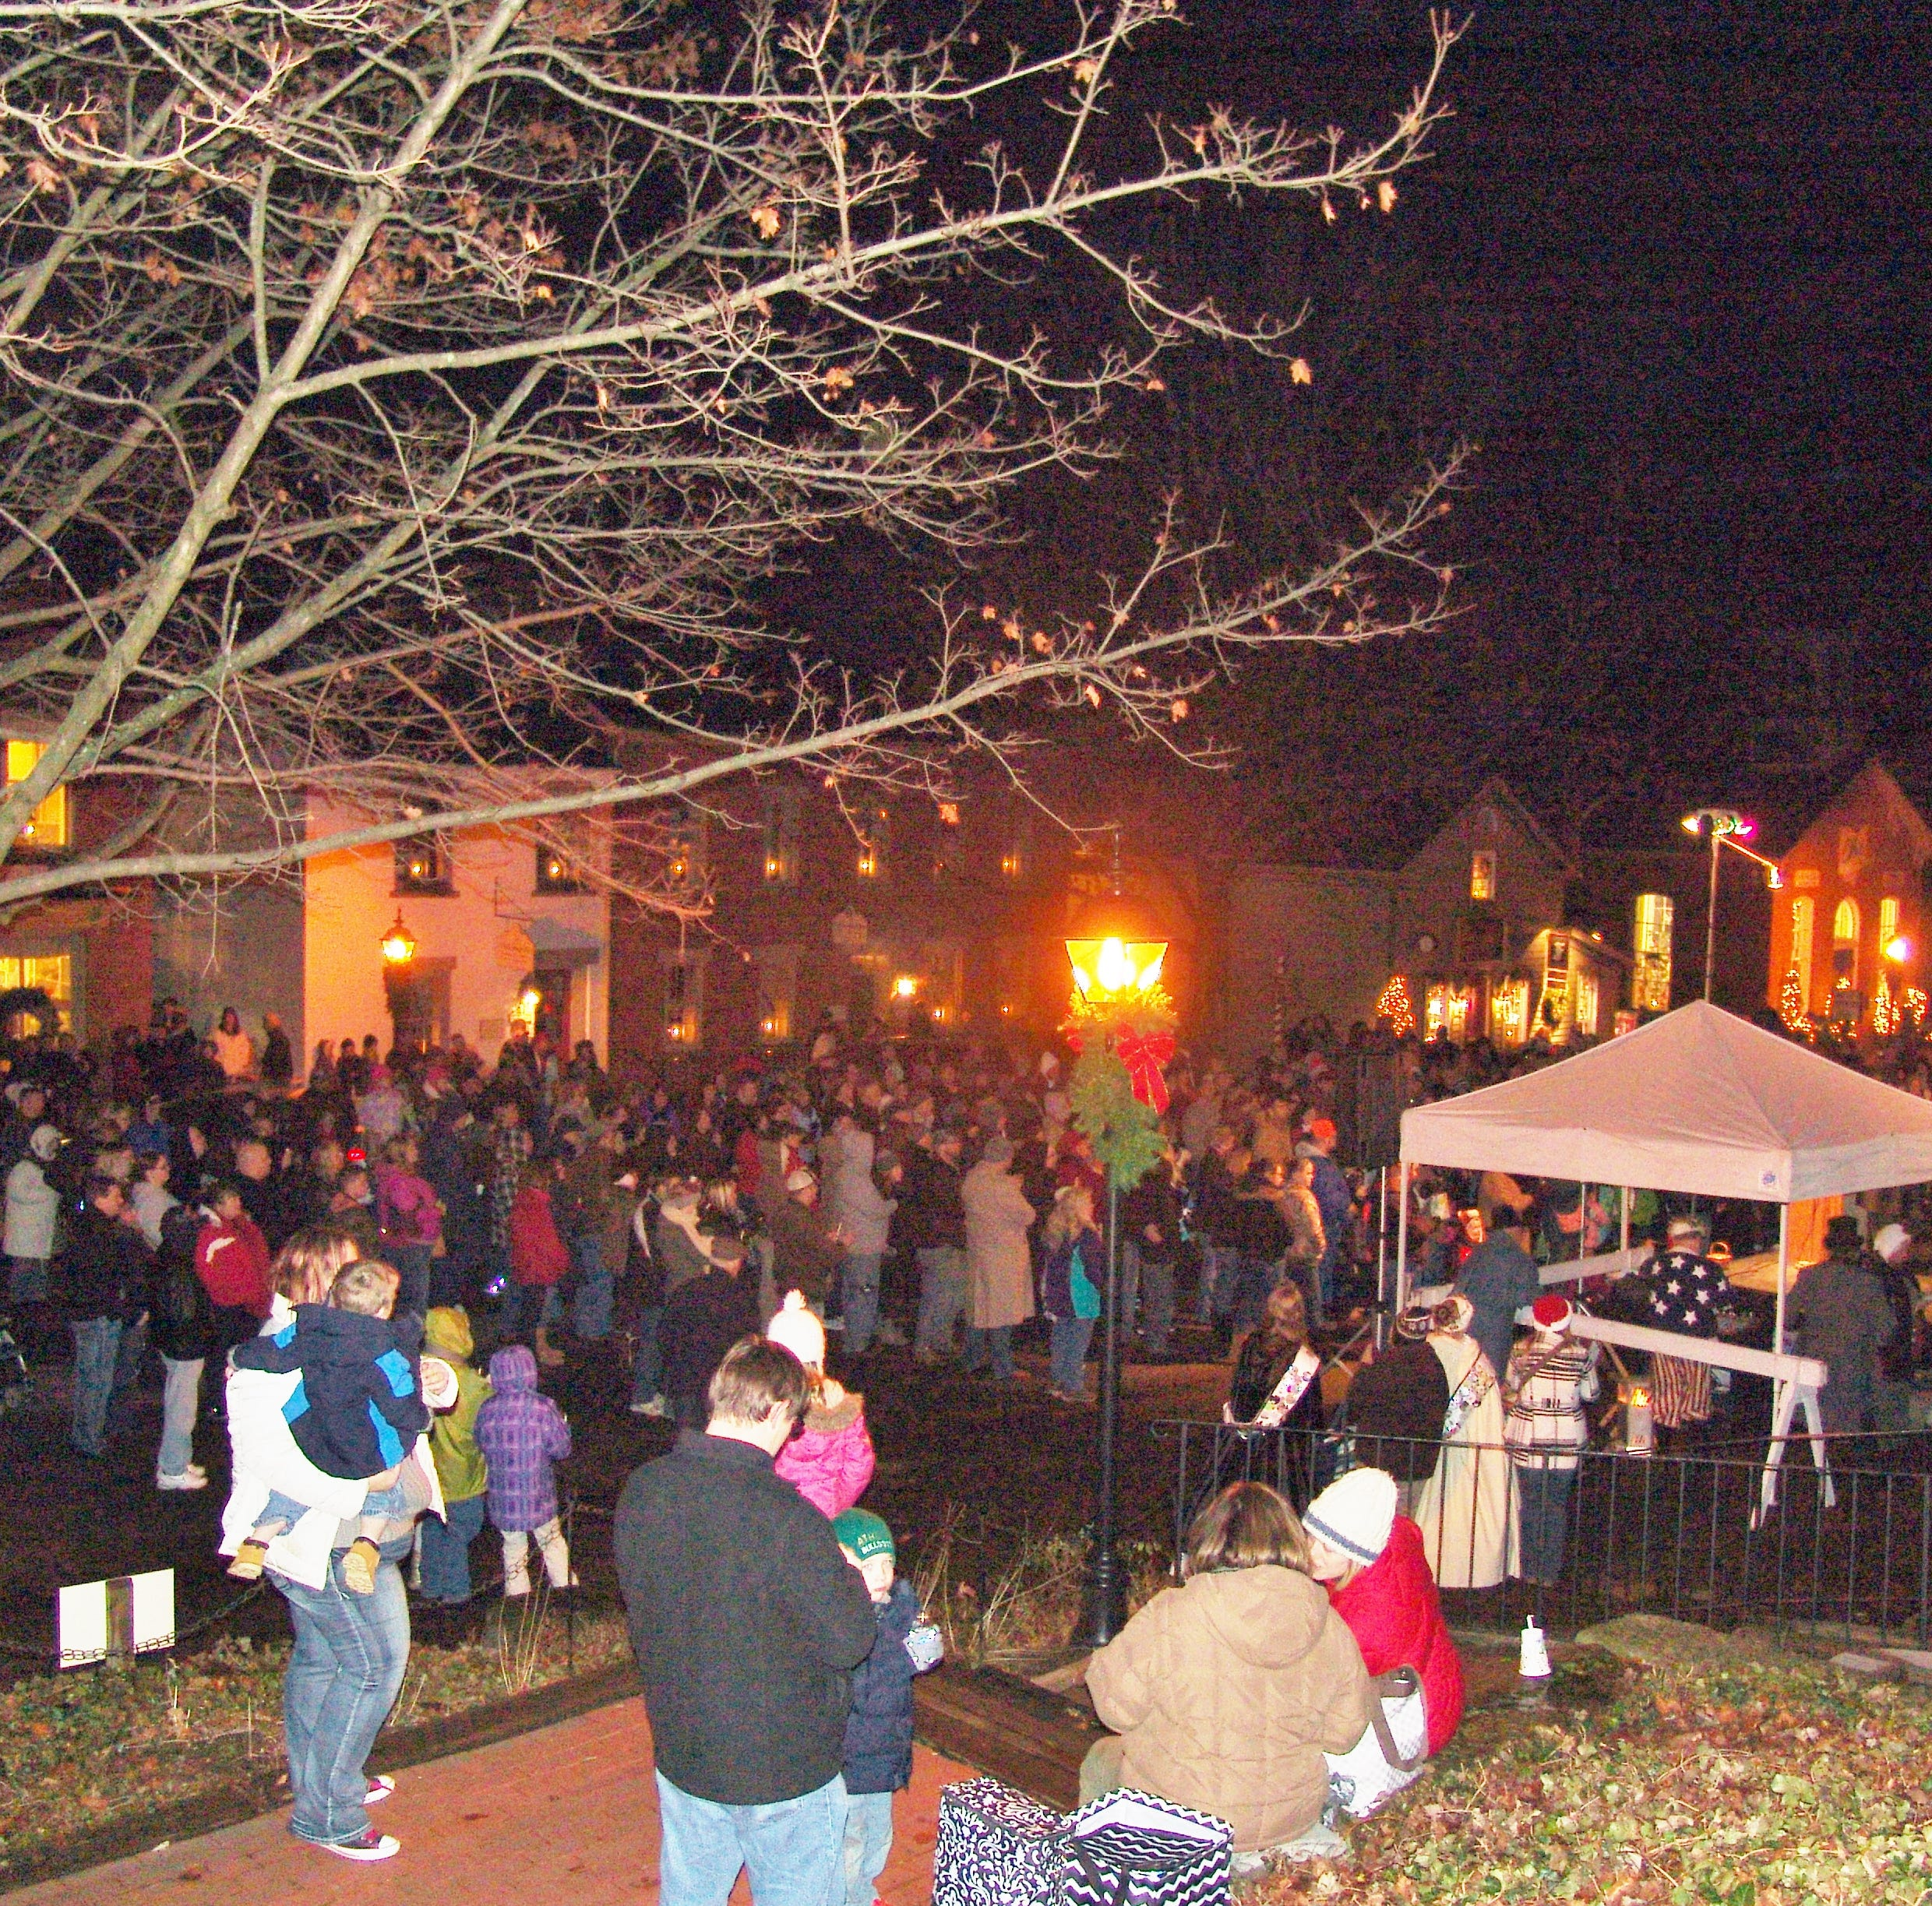 Crowds gathered in Roscoe Village each year to take part in the candlelighting ceremonies.